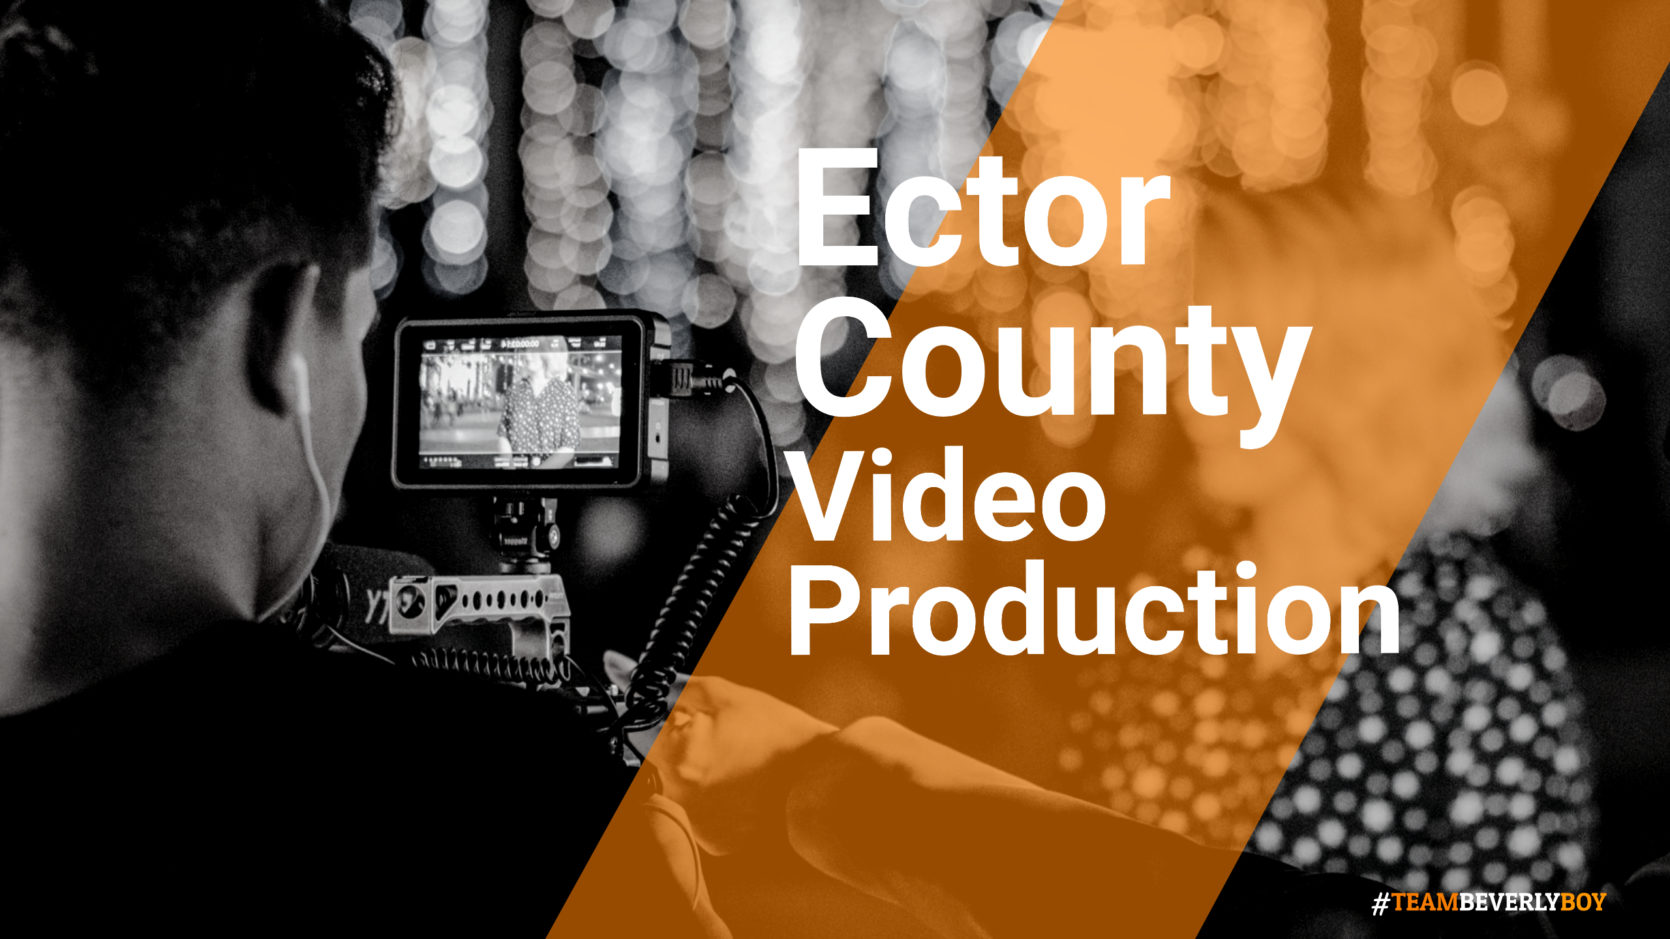 Ector County Video Production